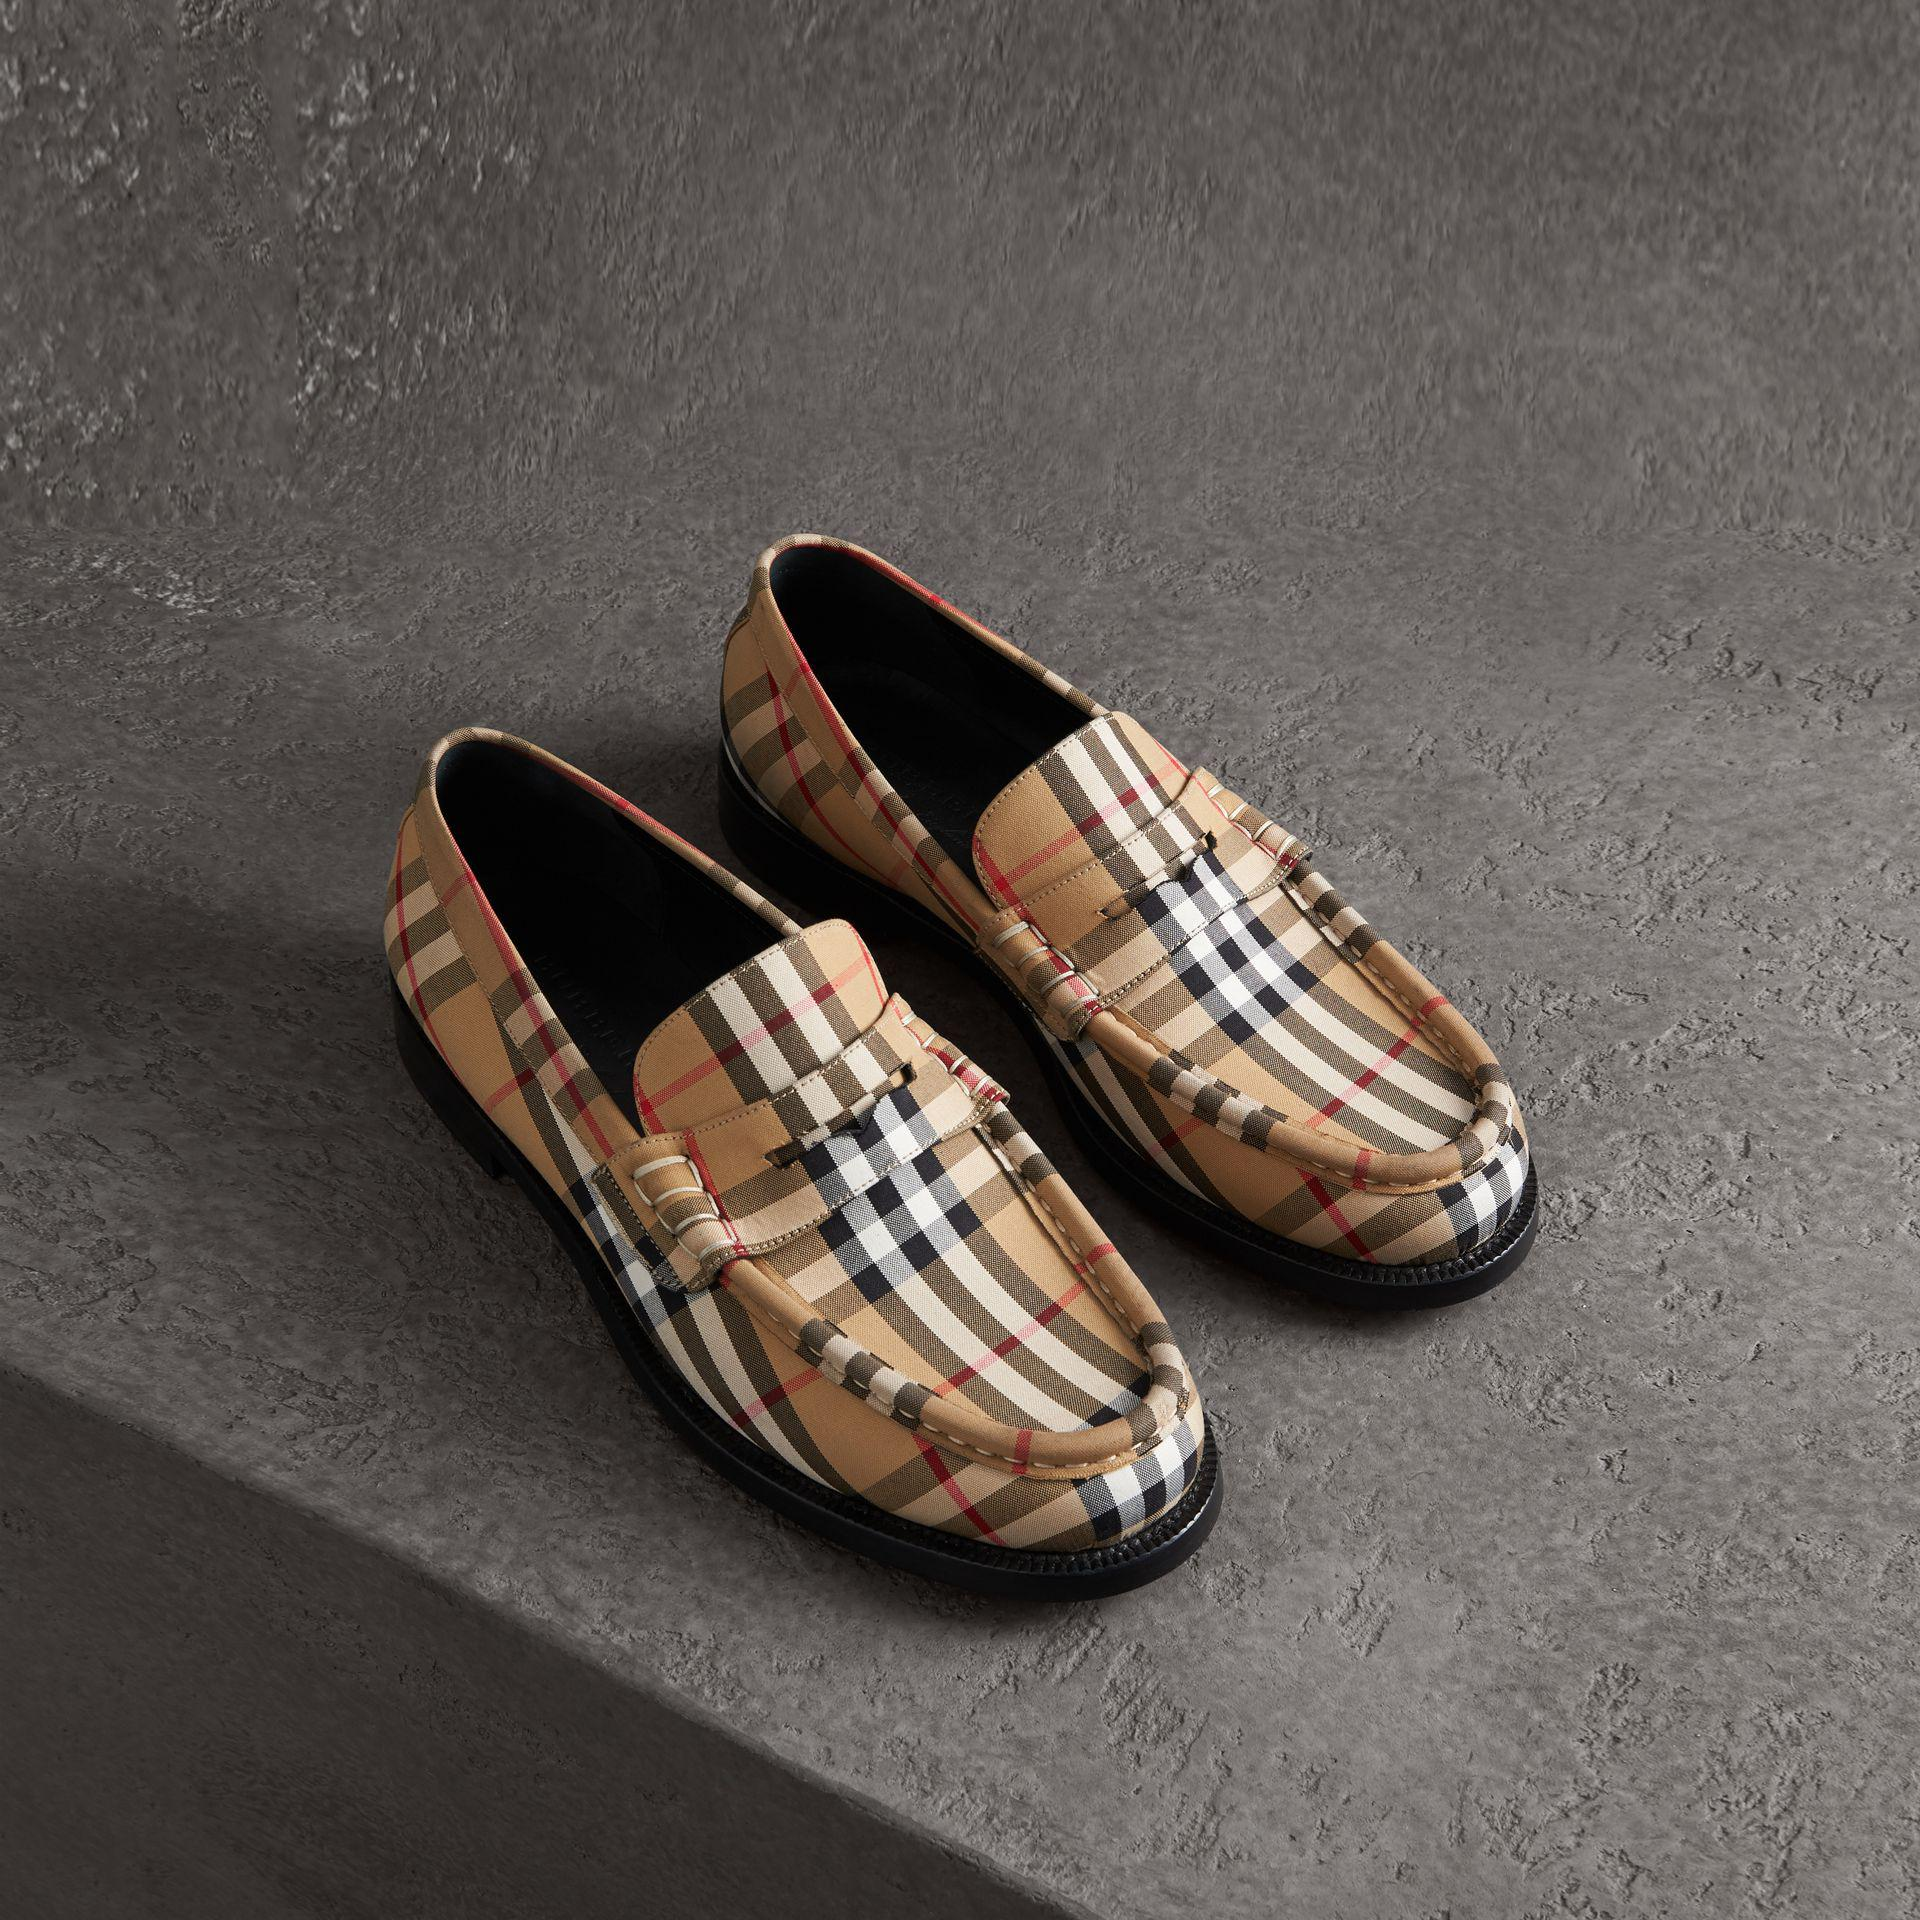 c6fdd203f Burberry Vintage Check Cotton Loafers for Men - Lyst